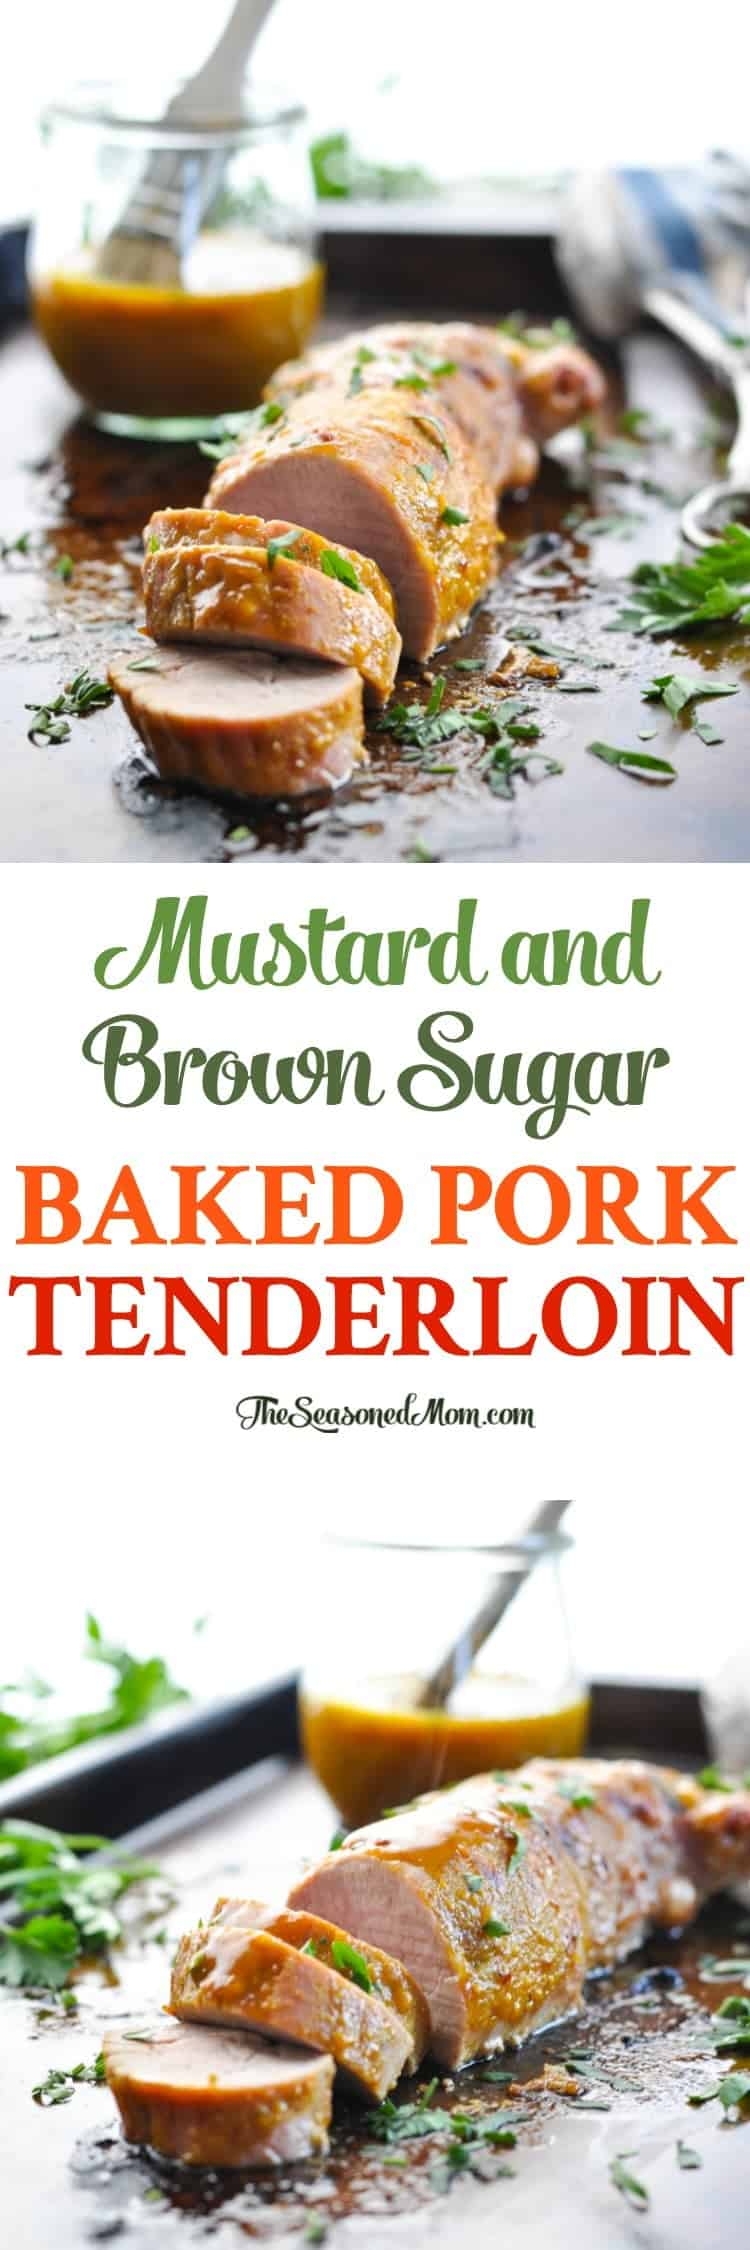 Long vertical image of baked pork tenderloin